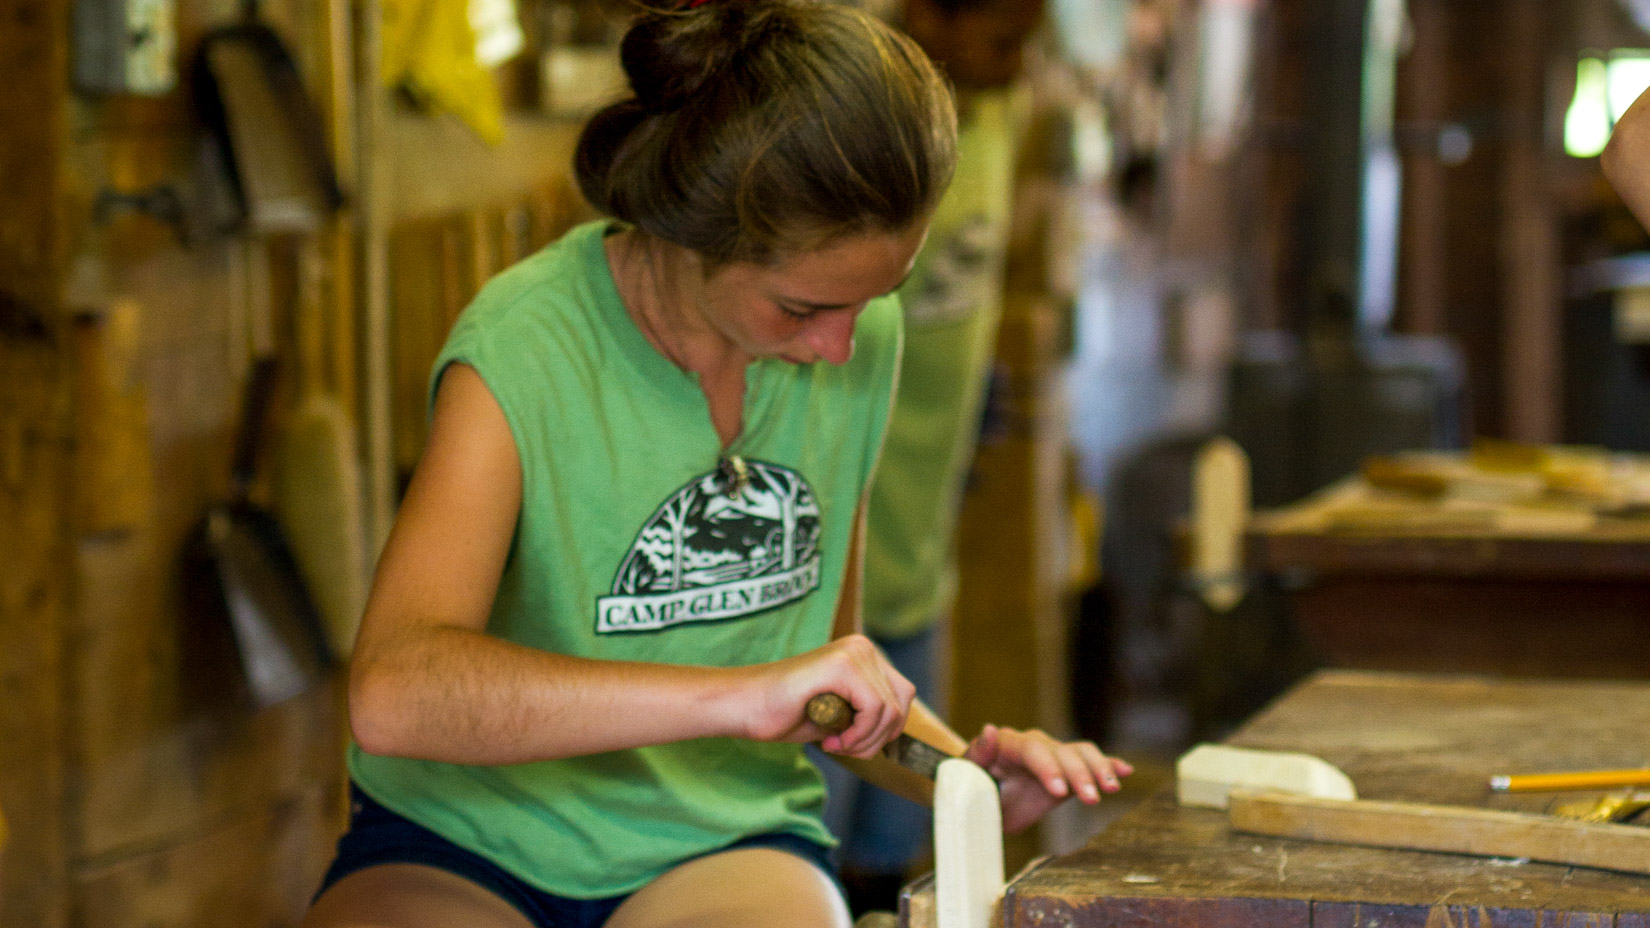 A camper working on a piece of wood in the woodshop.